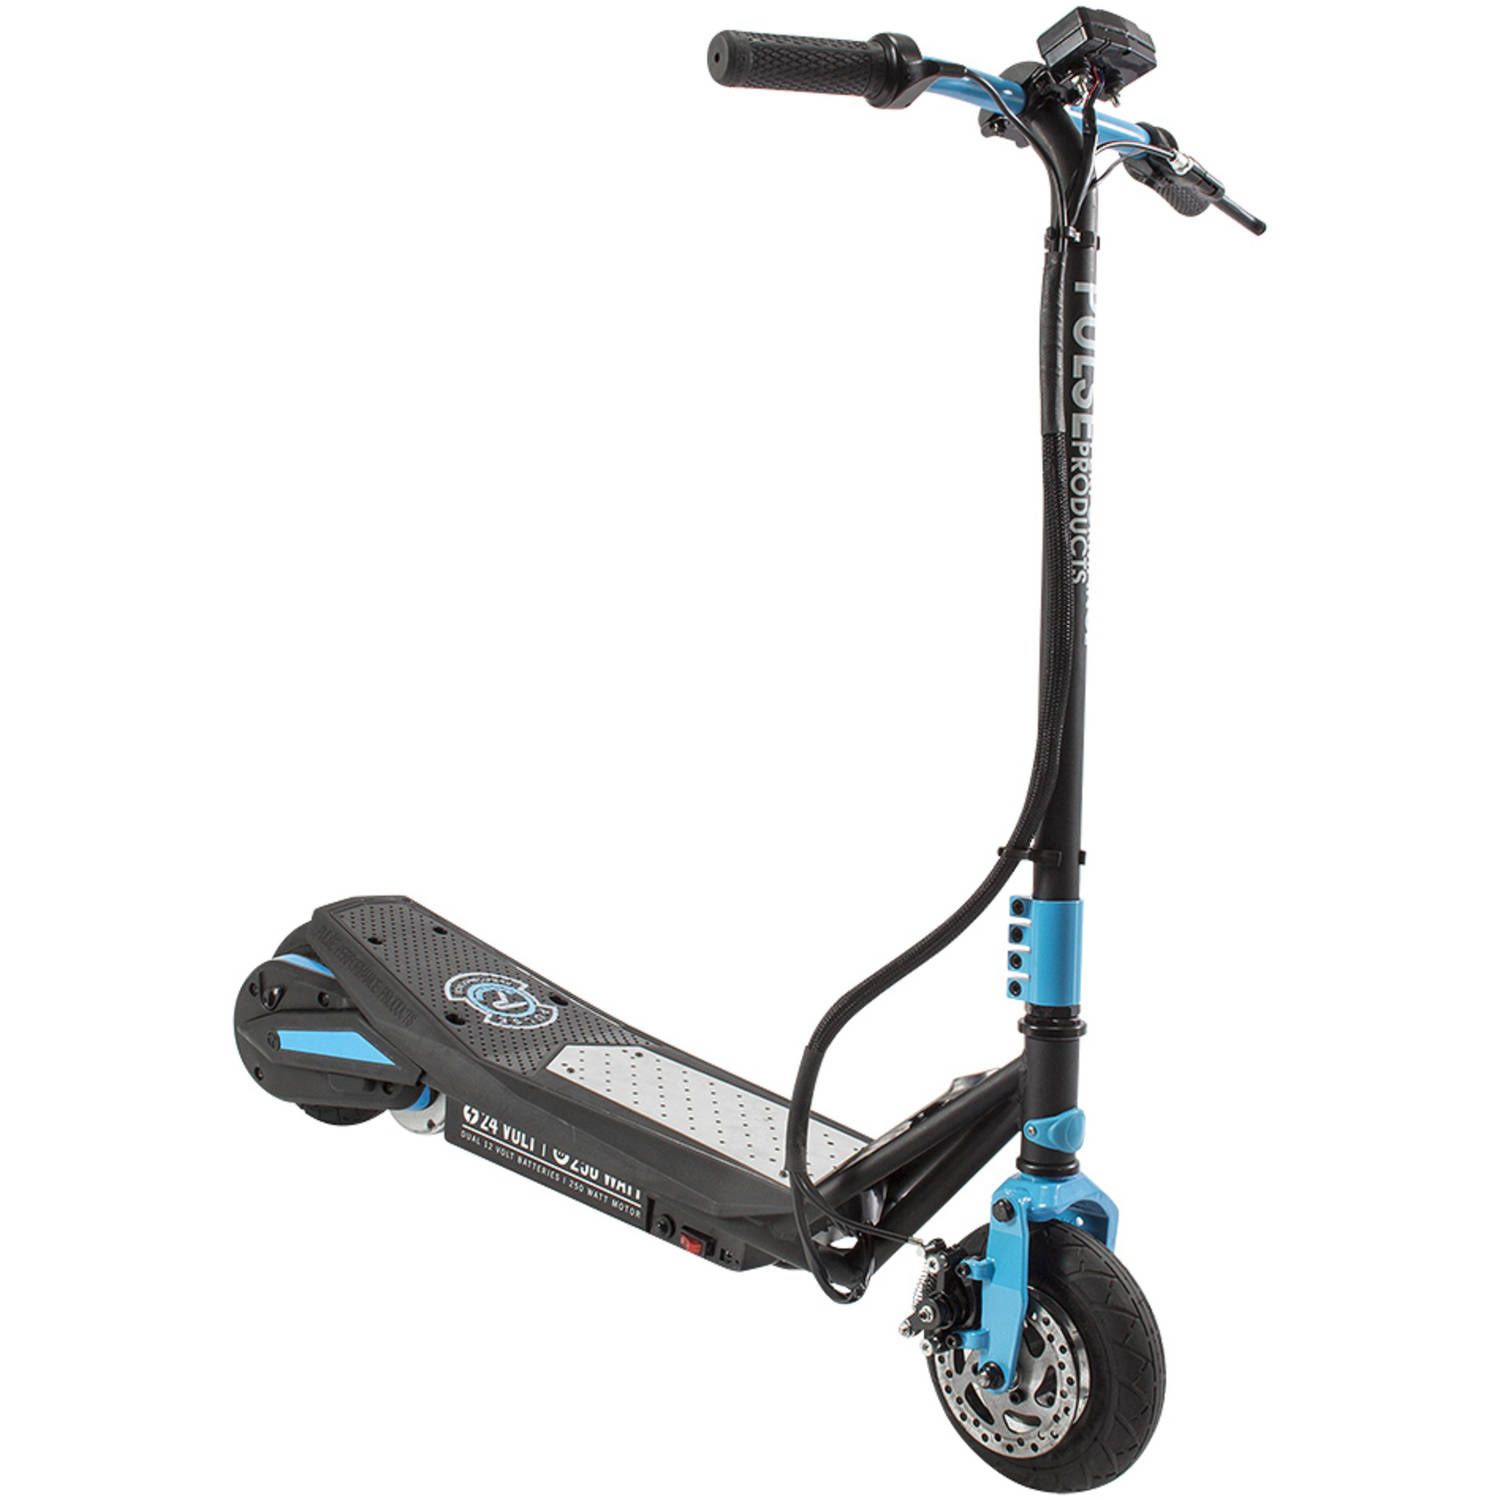 Pulse Performance Super-C Electric Scooter by Pulse